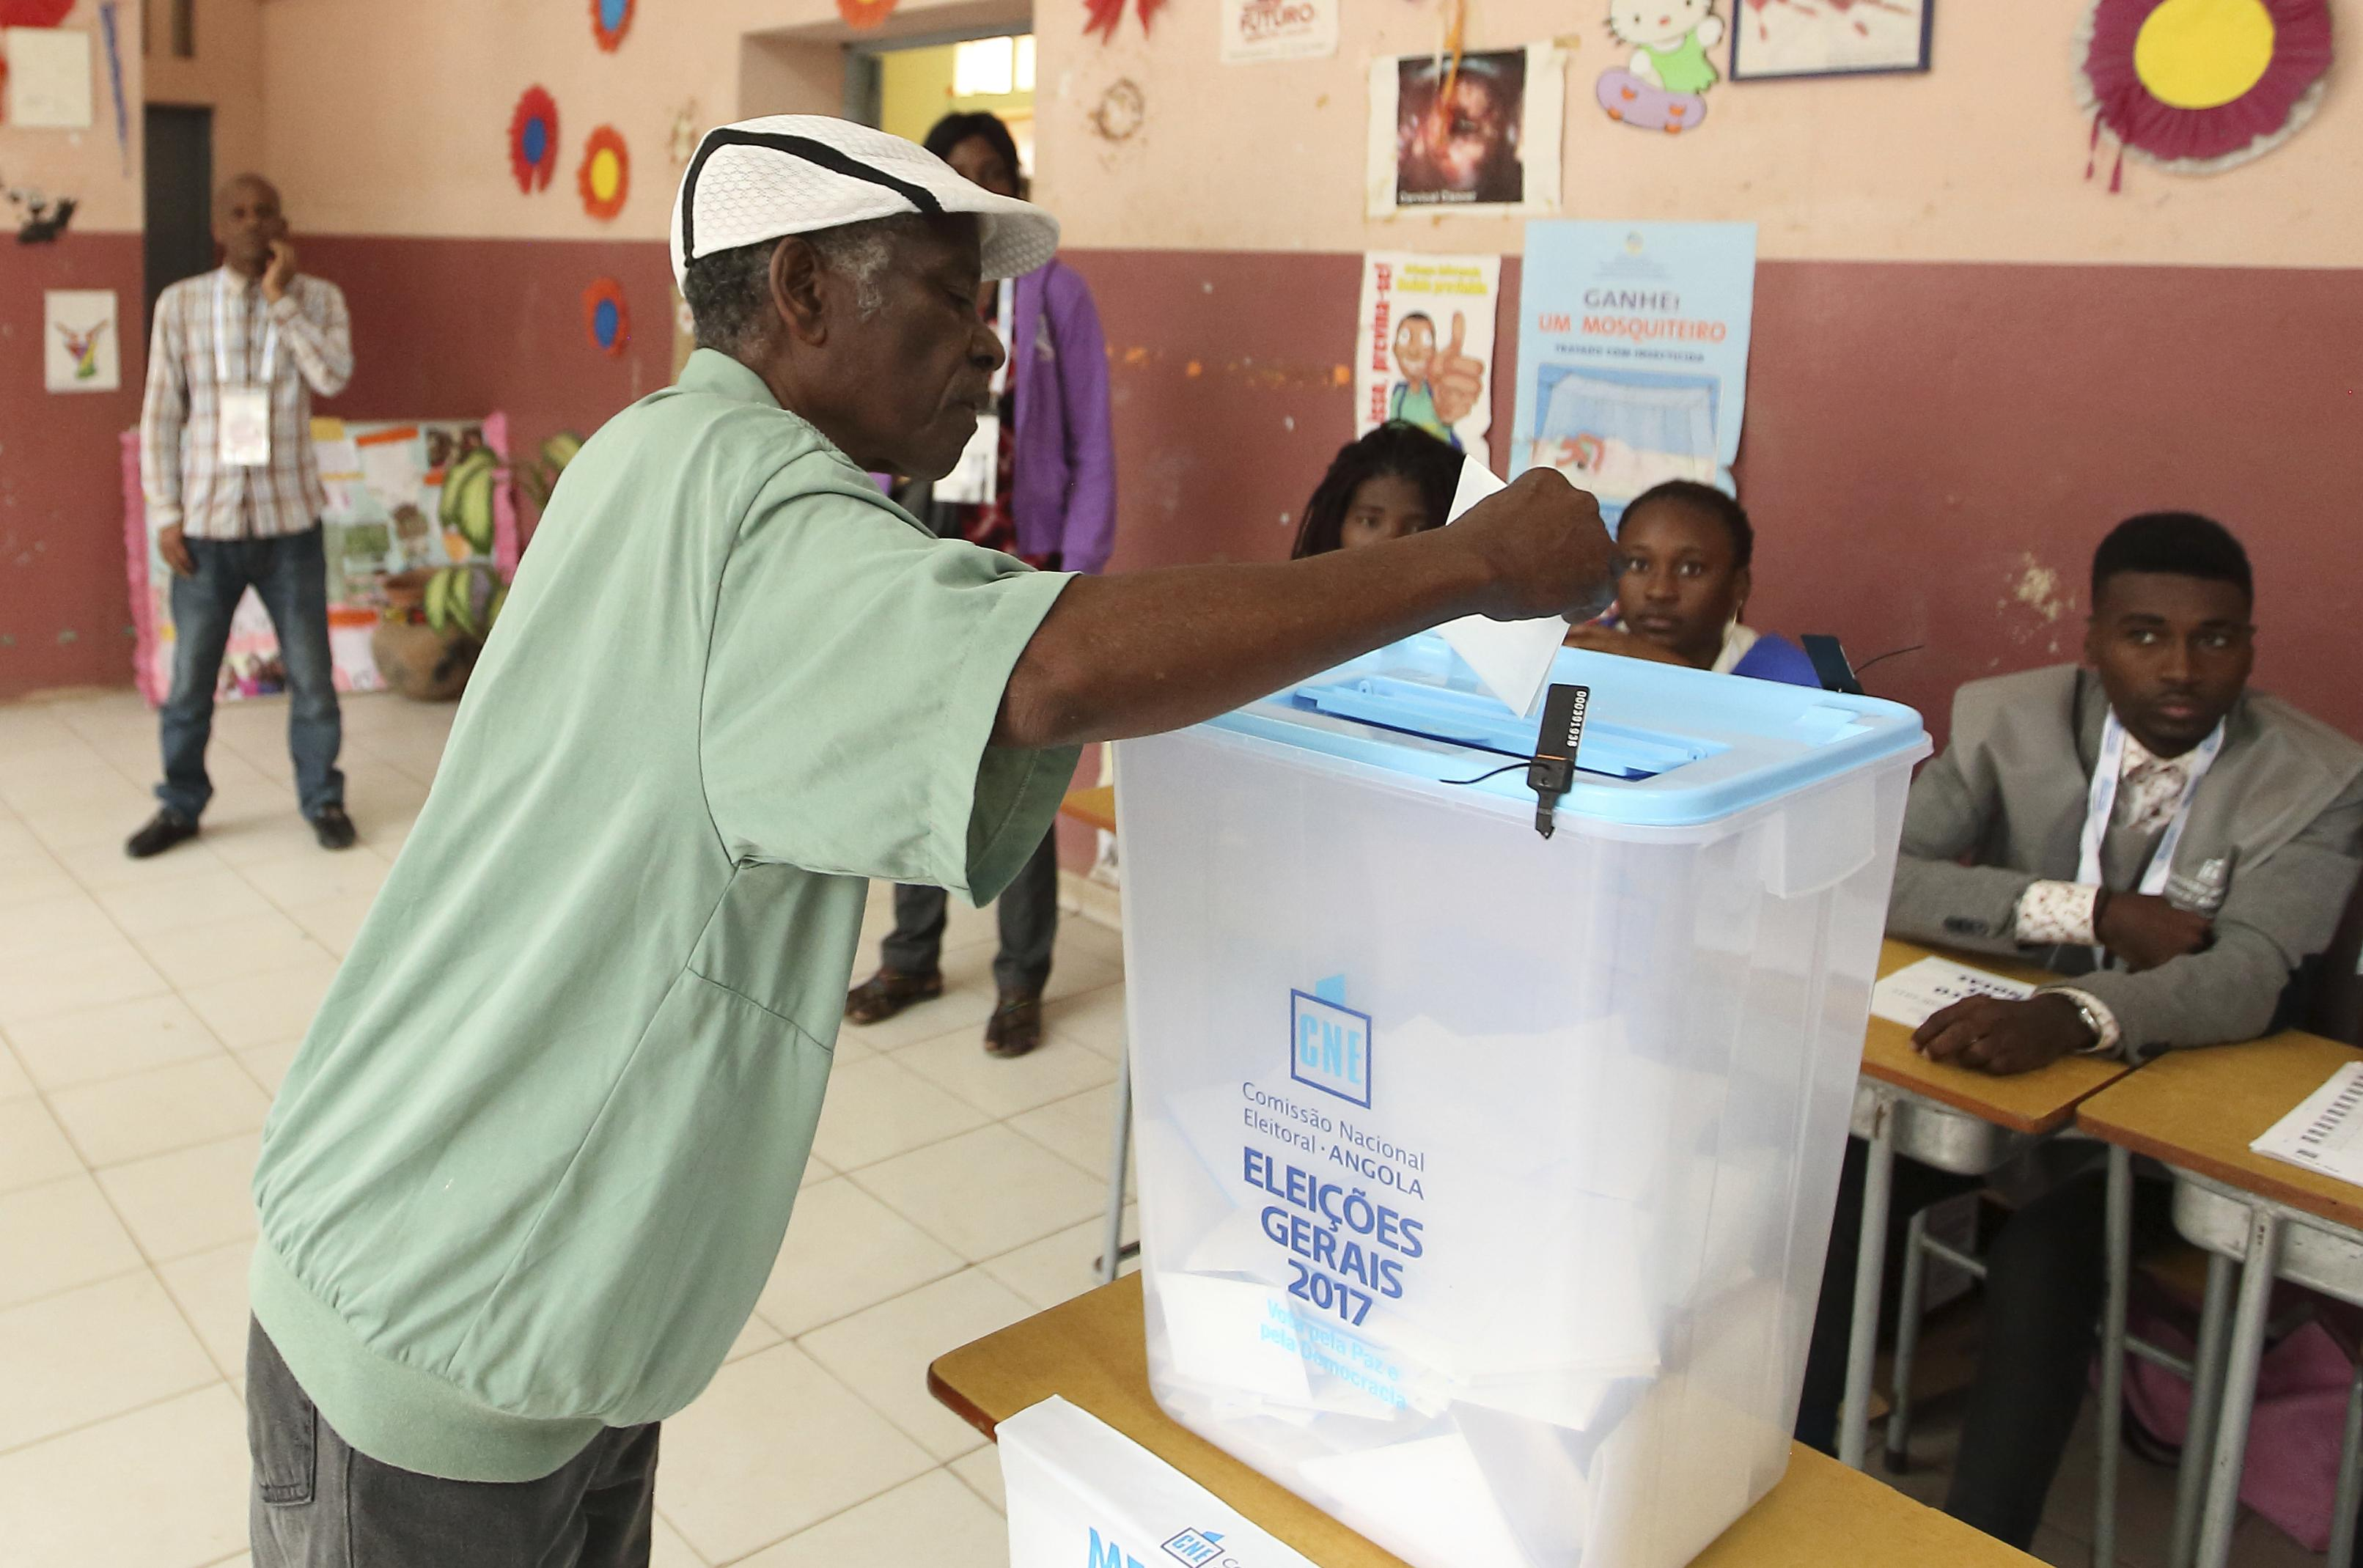 Angola votes for 1st new president in nearly 4 decades | The